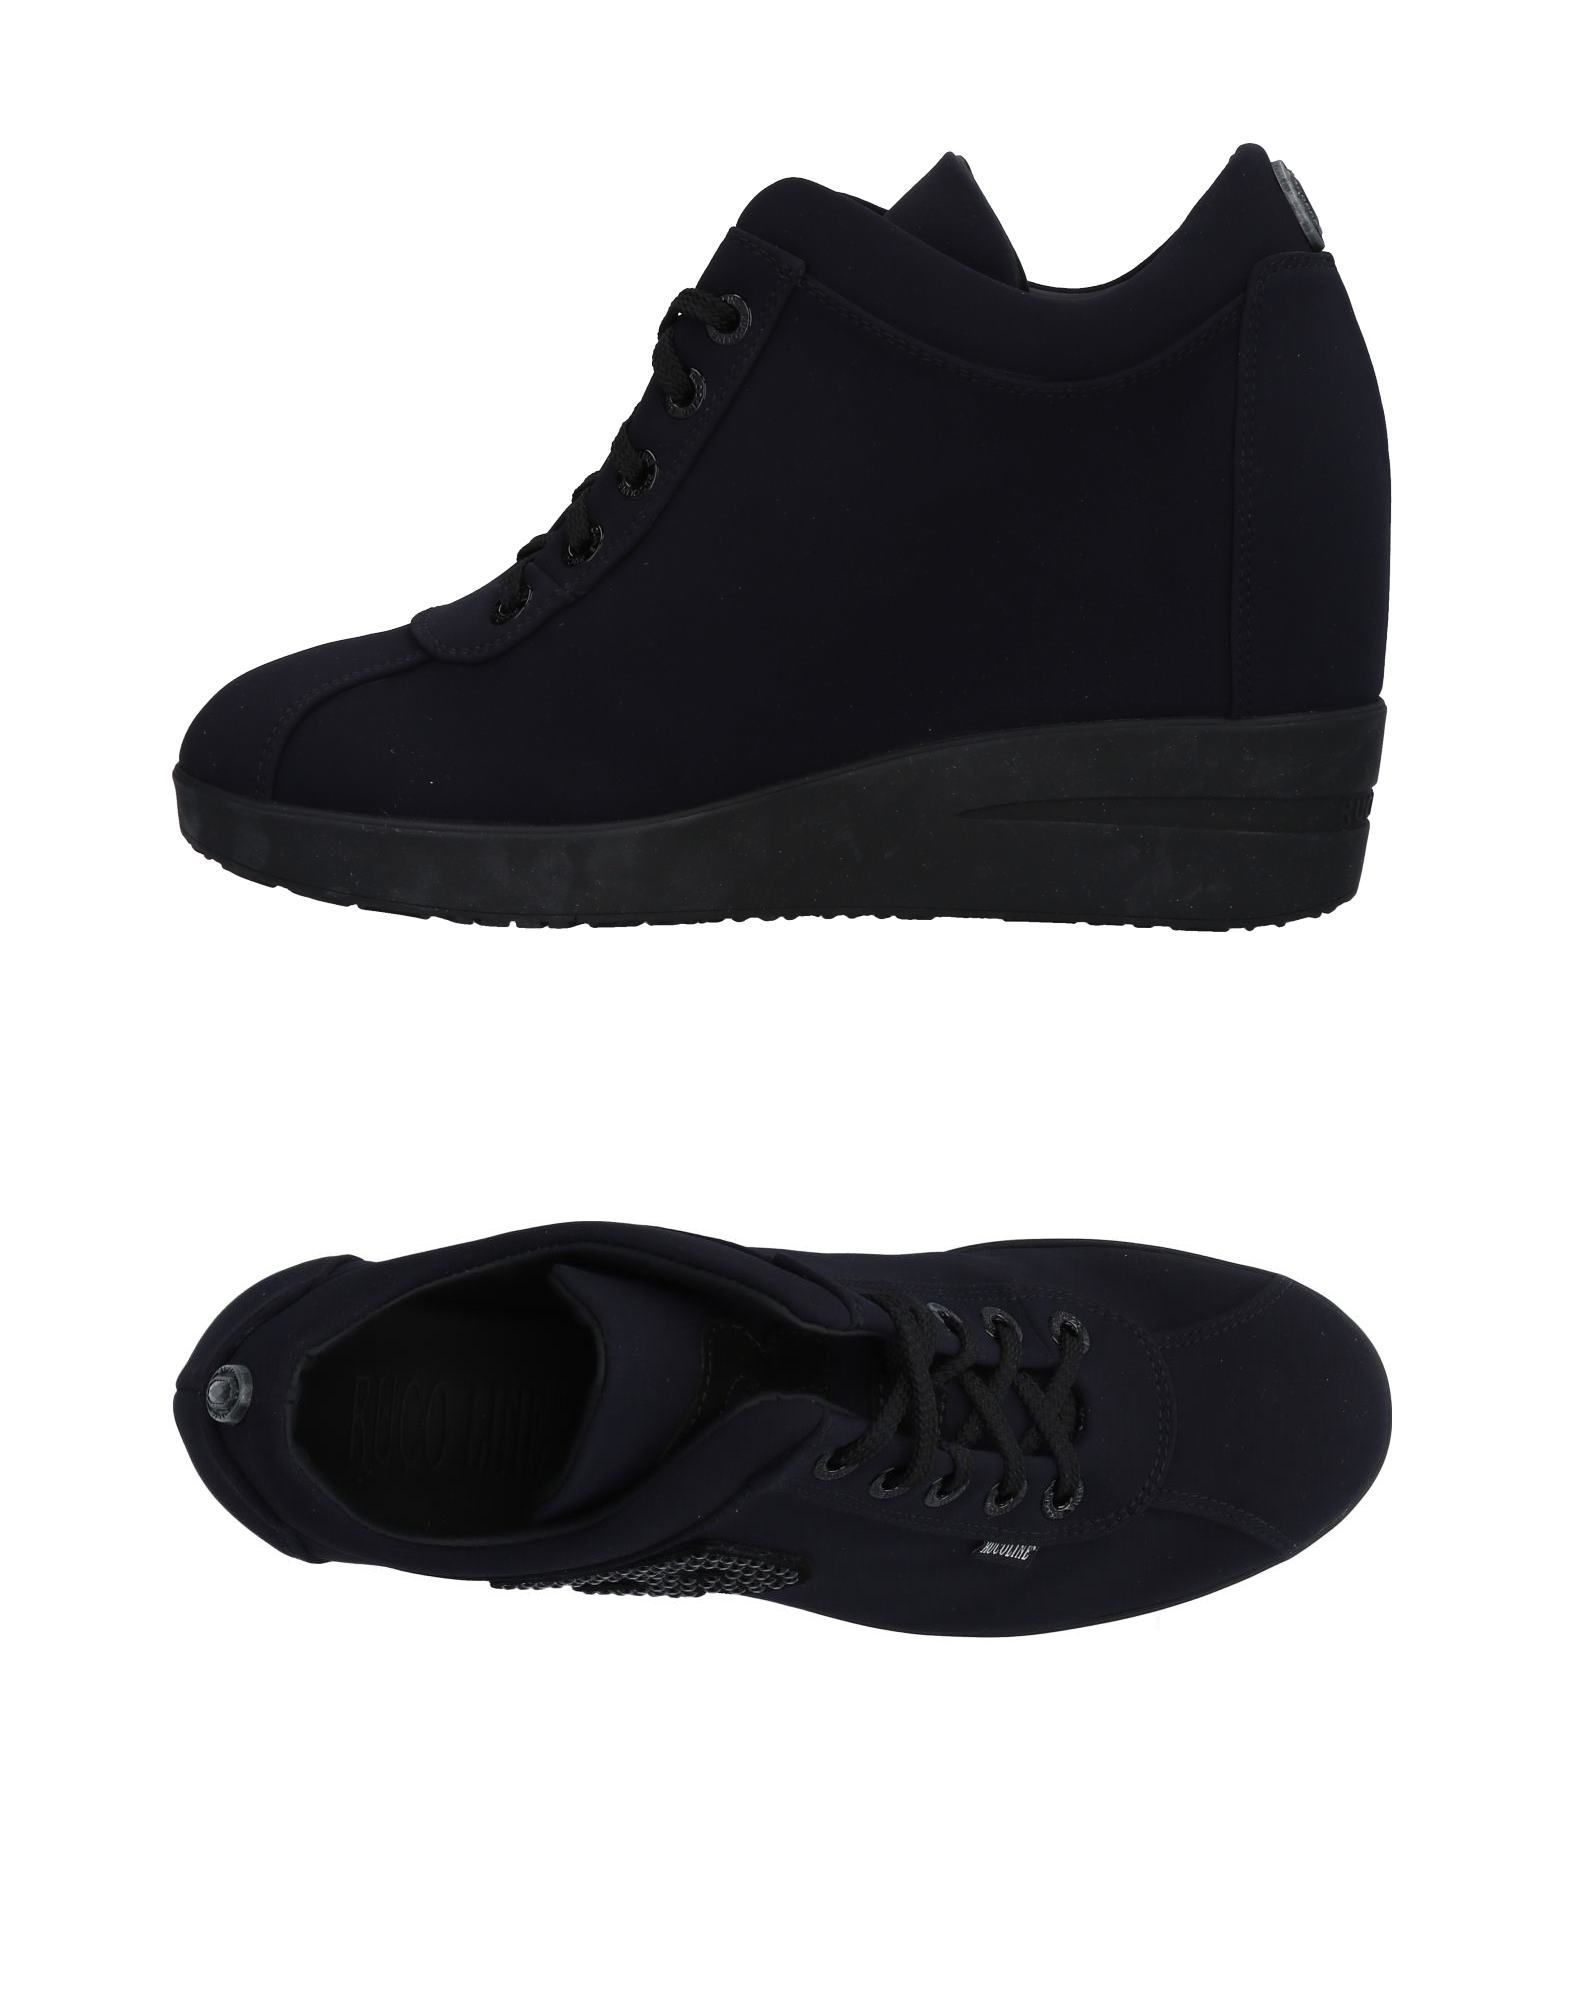 Baskets Ruco Line Femme - Baskets Ruco Line Noir Chaussures casual sauvages